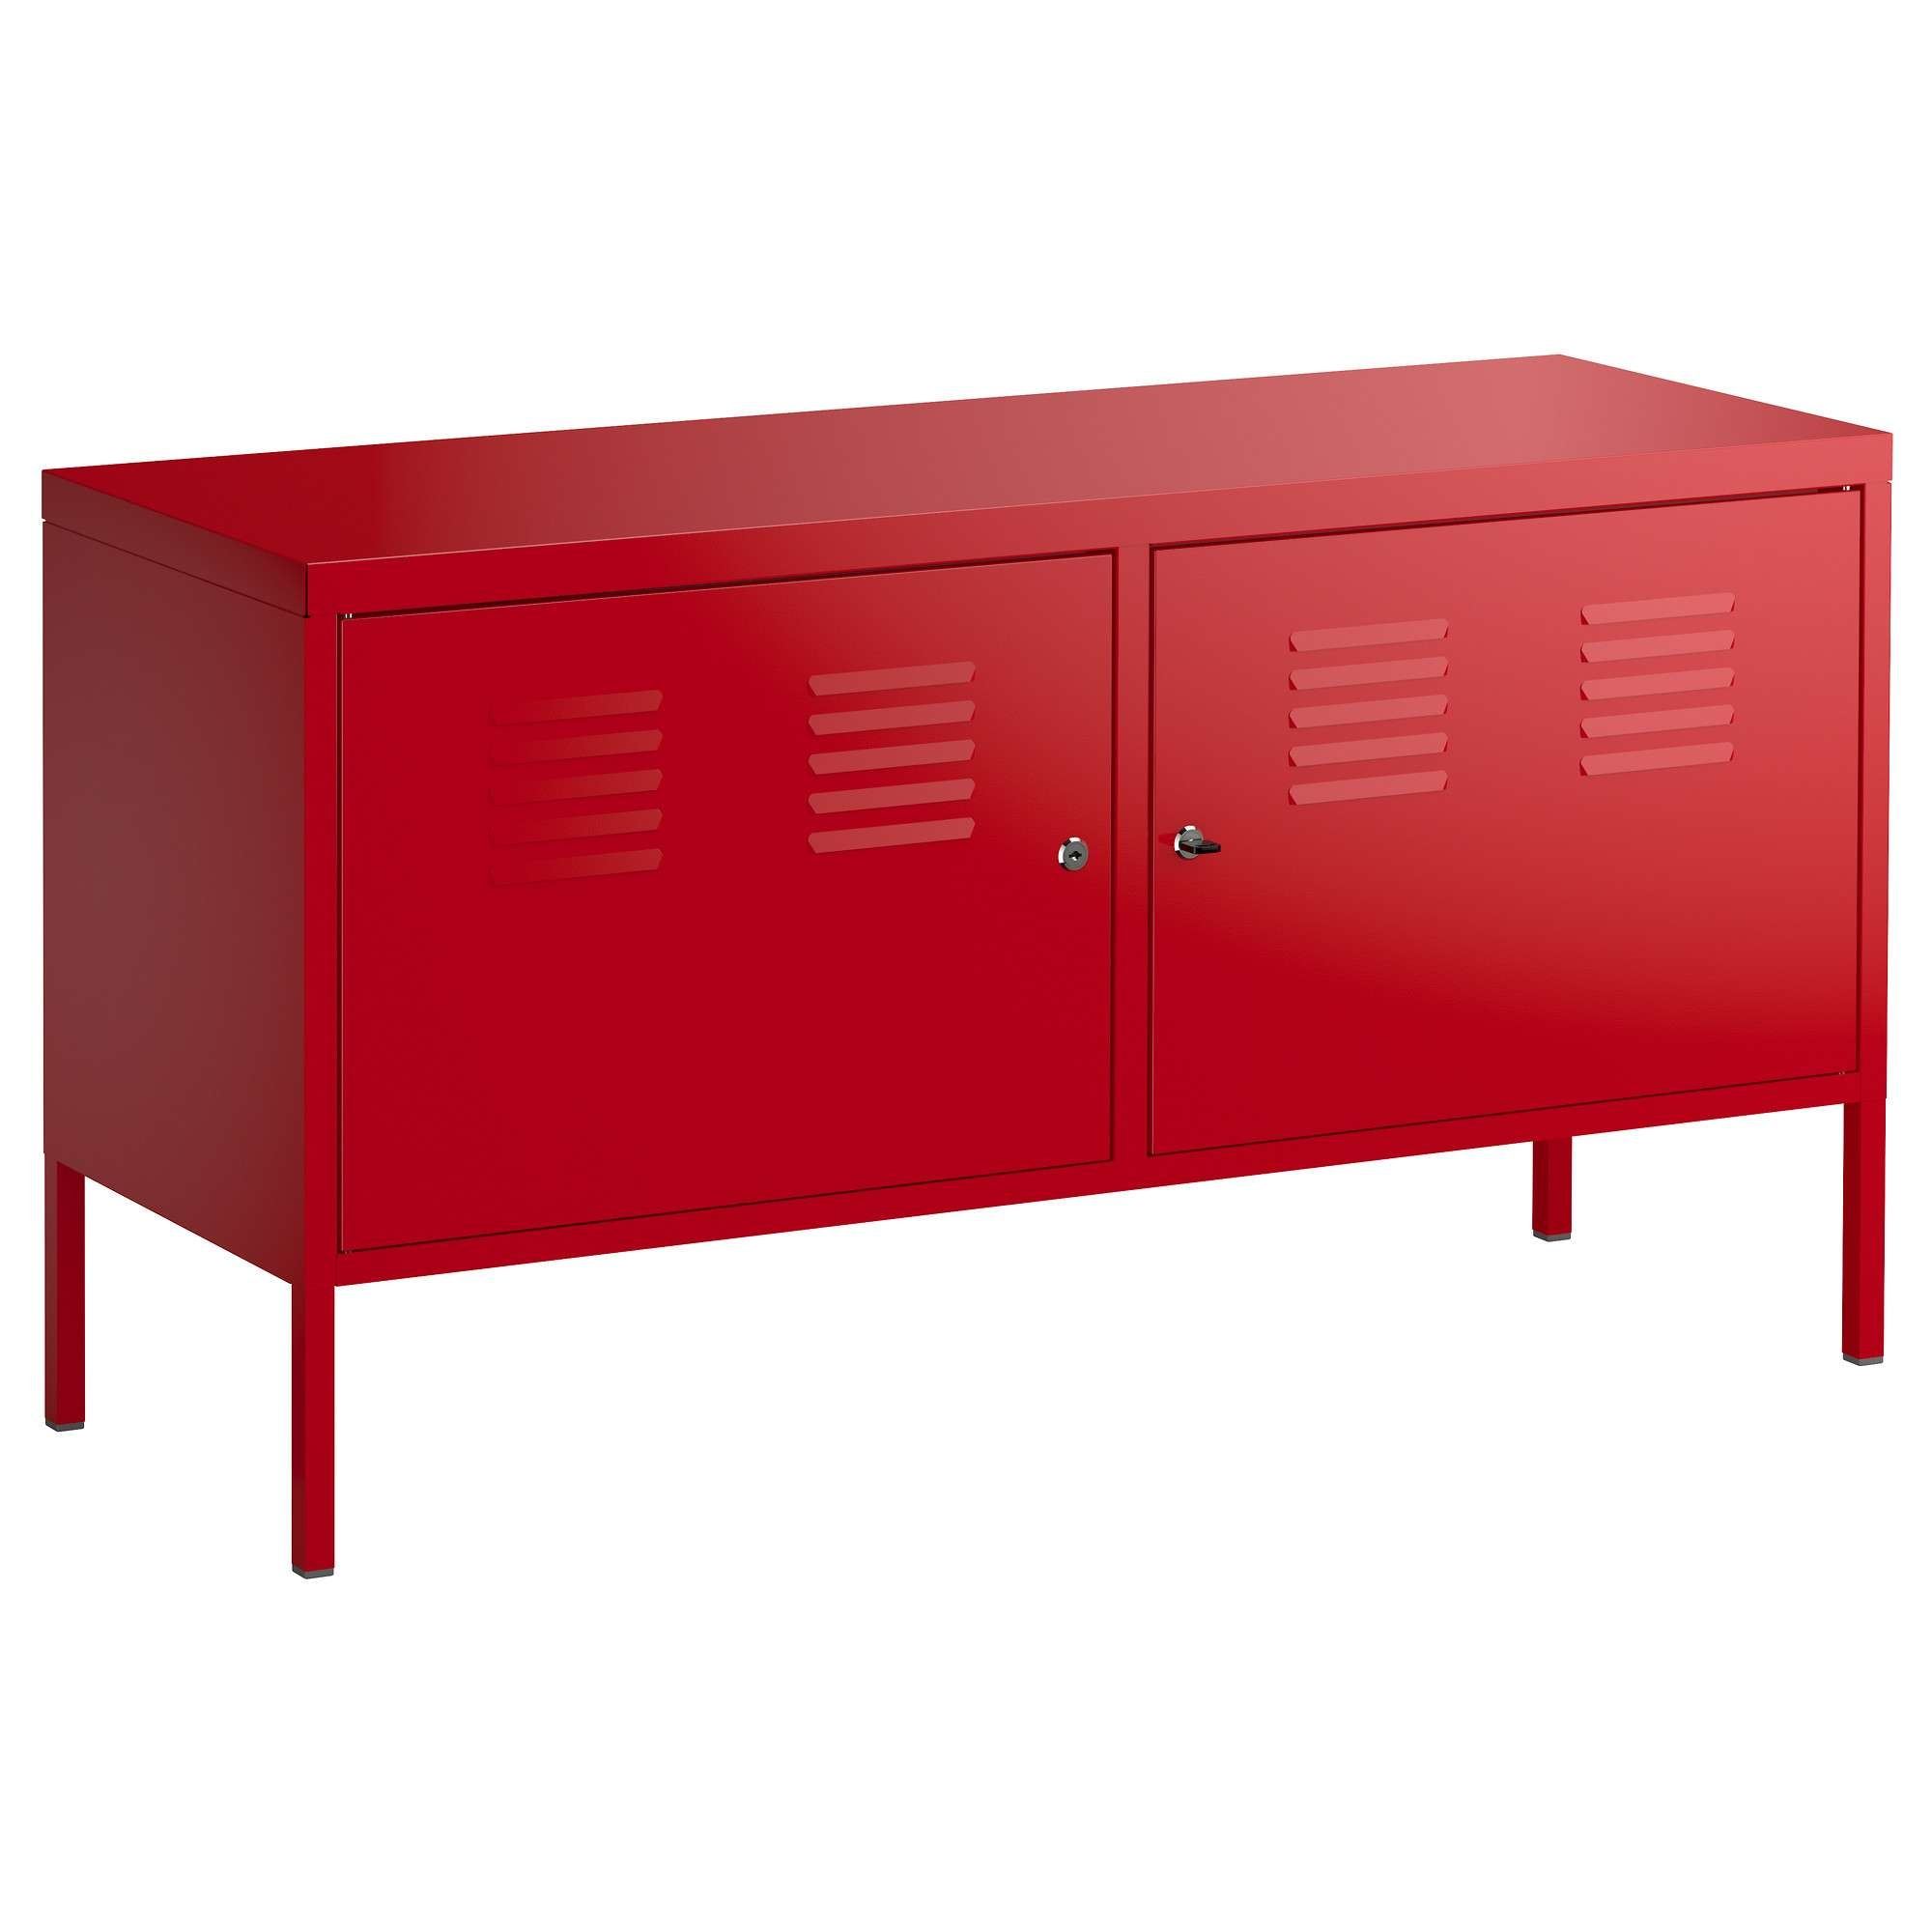 Ikea Ps Cabinet Red 119x63 Cm – Ikea Regarding Red Sideboards (View 4 of 20)